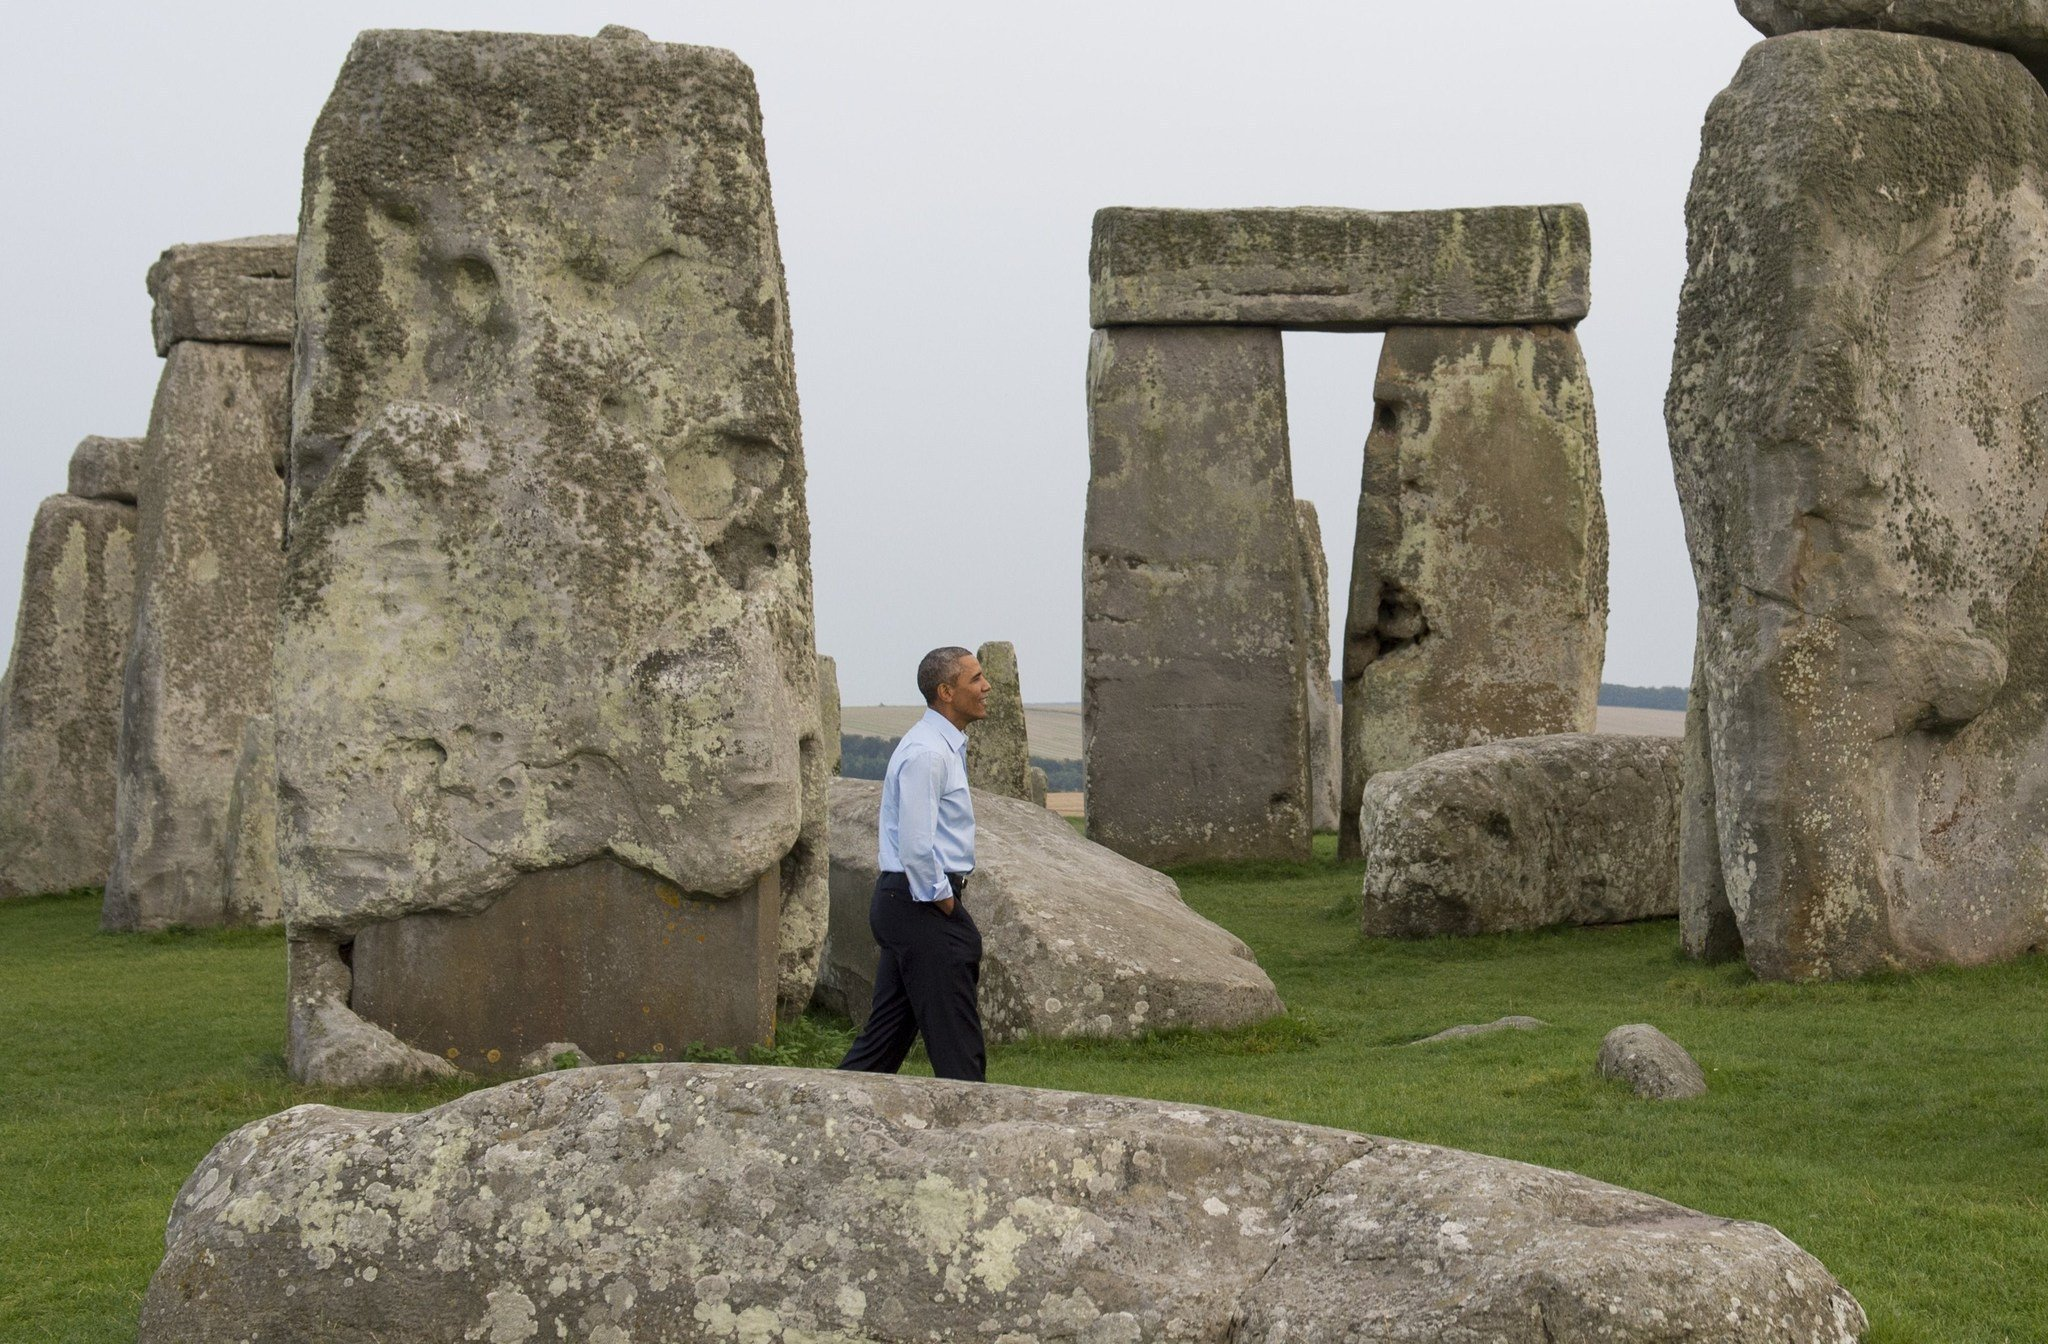 Obama makes surprise visit to Stonehenge - Capital Gazette